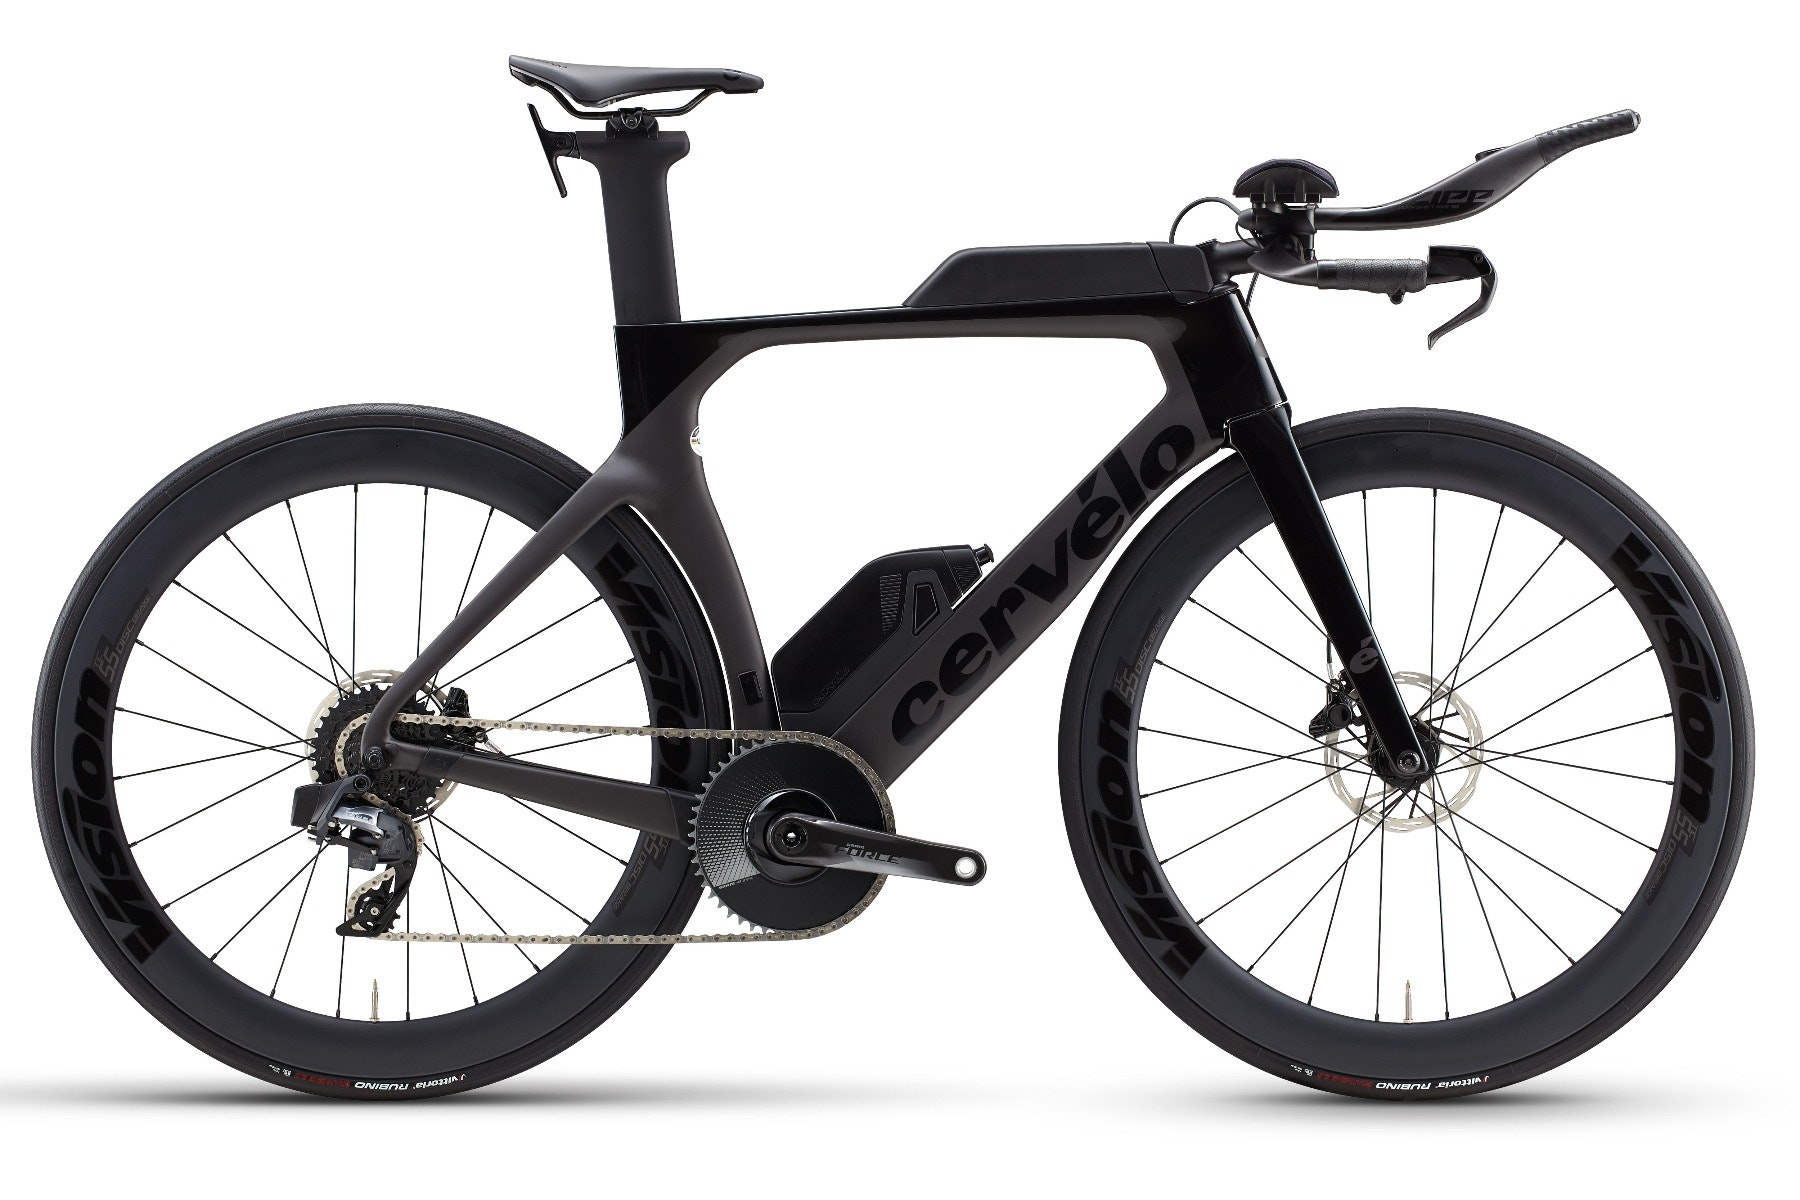 Cervelo P Series Force Etap Axs 1 2021